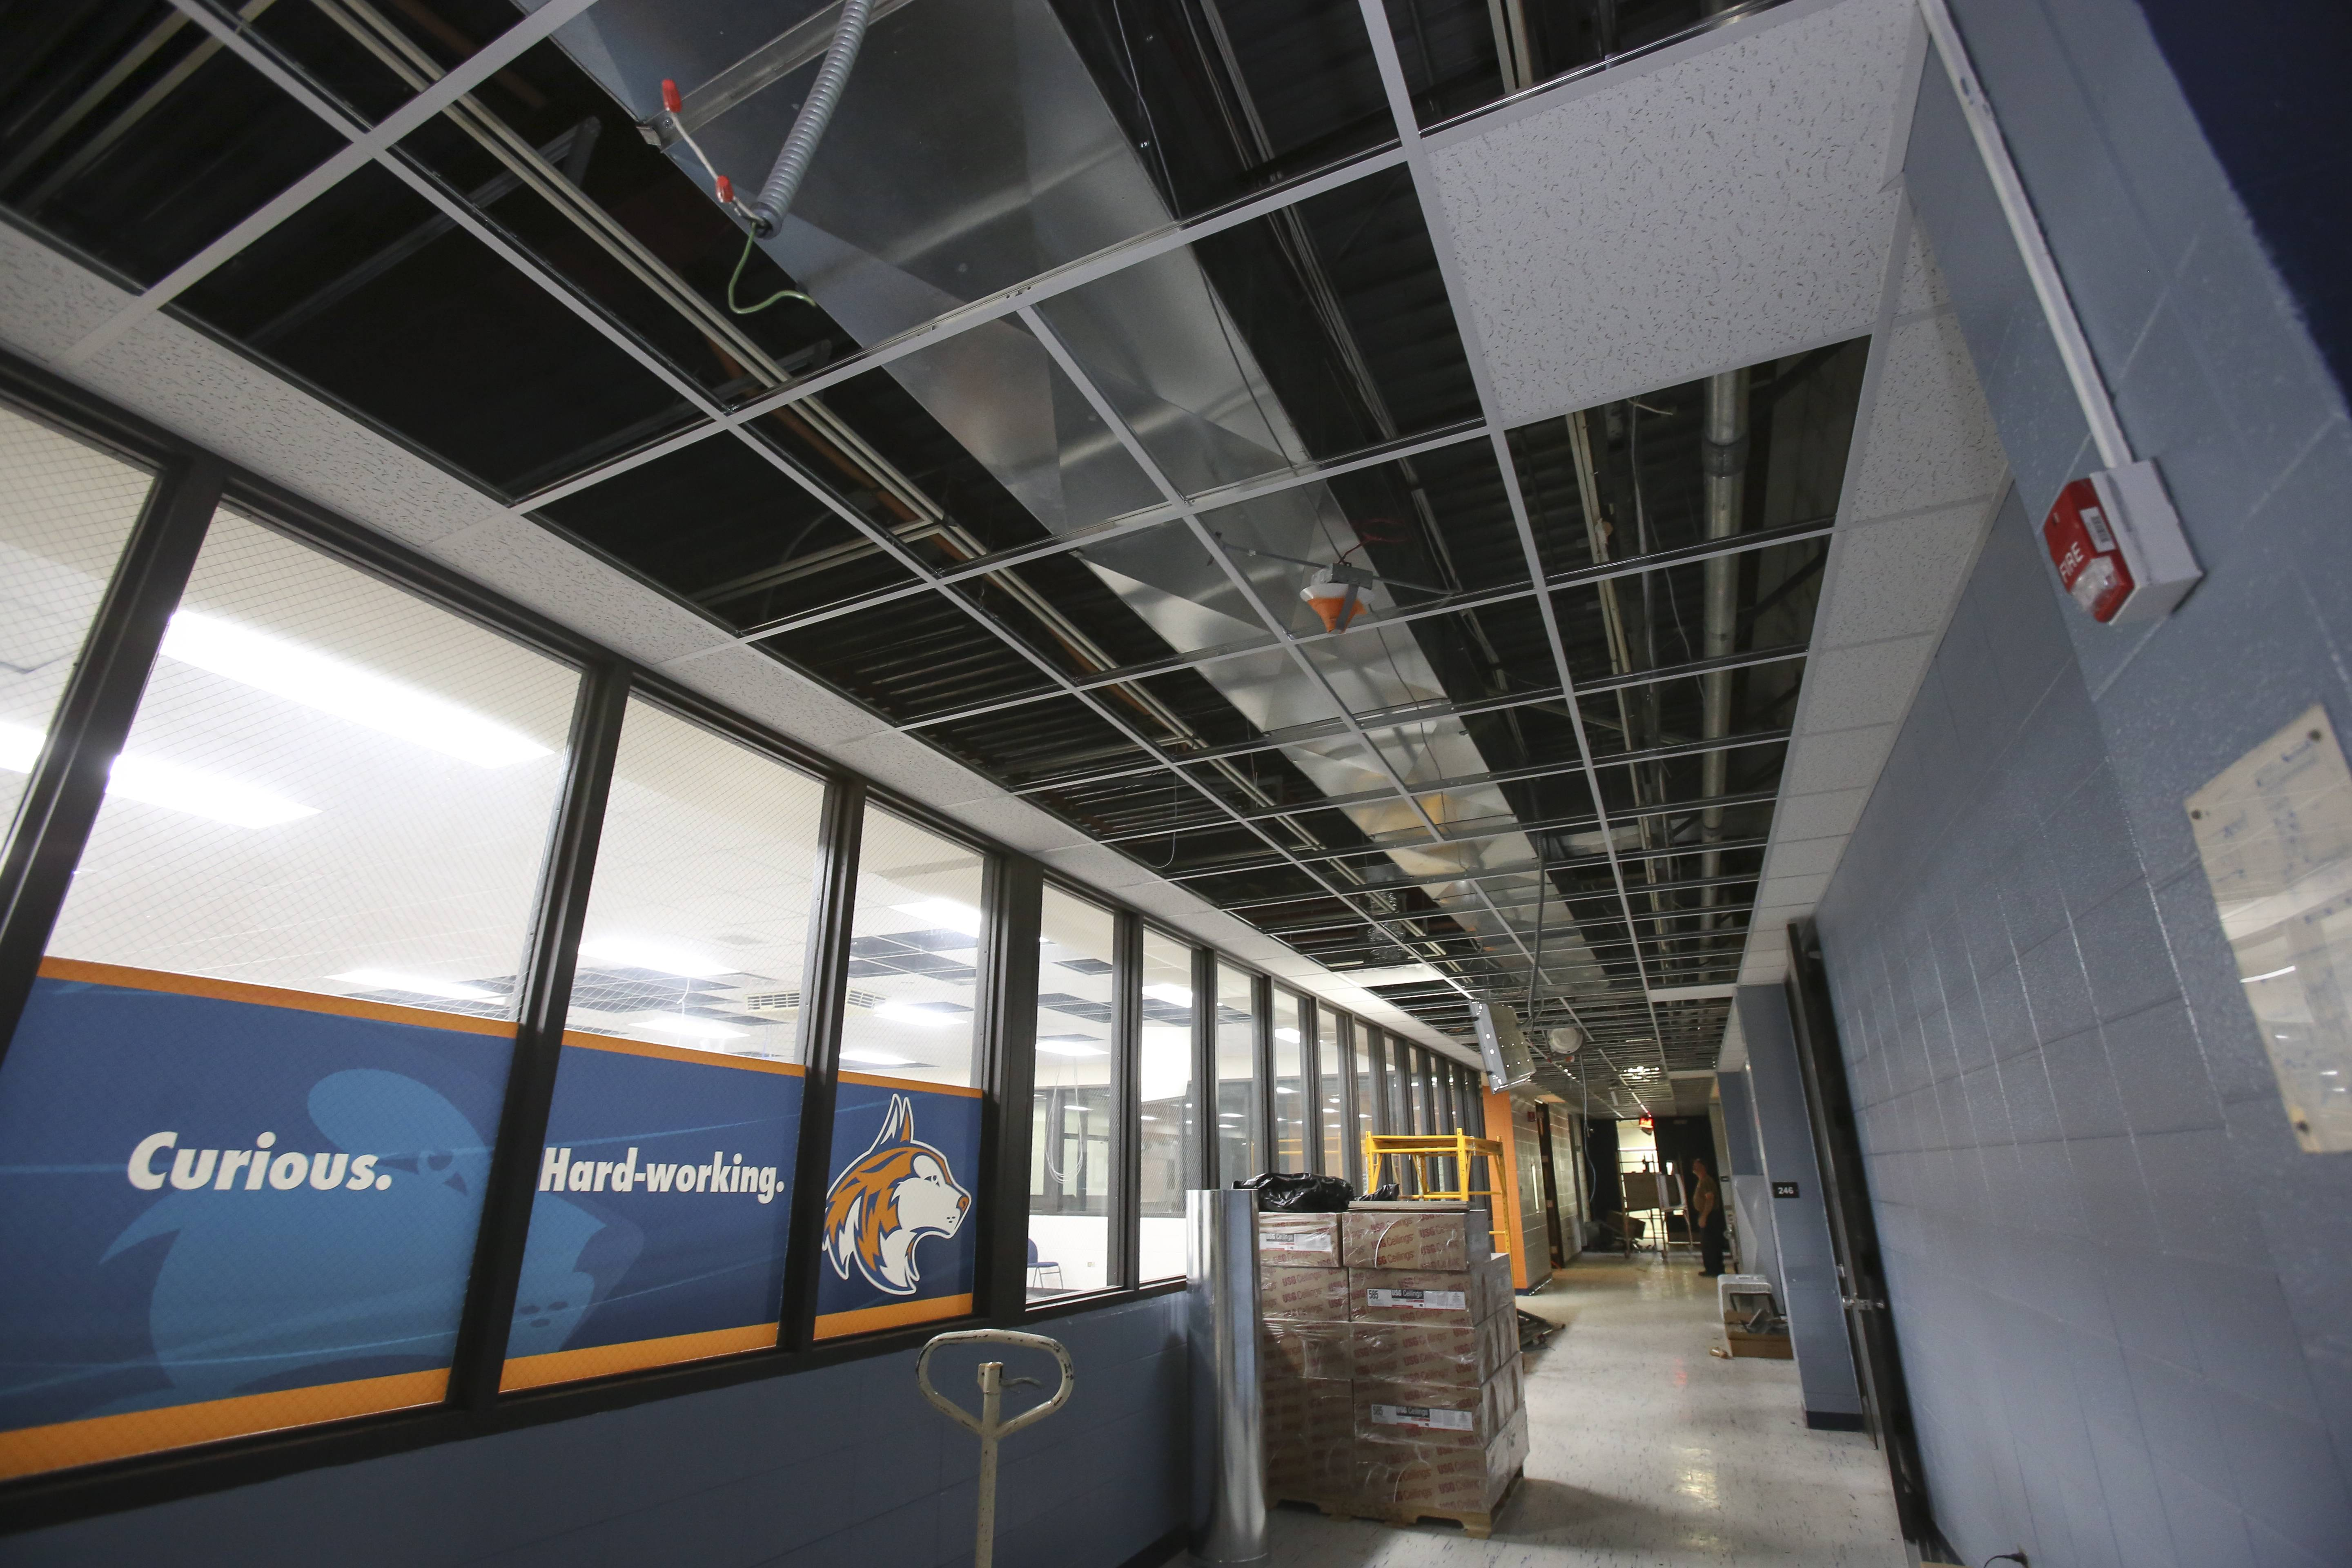 New duct work is one of the changes that is part of ongoing construction at Naperville North High School.